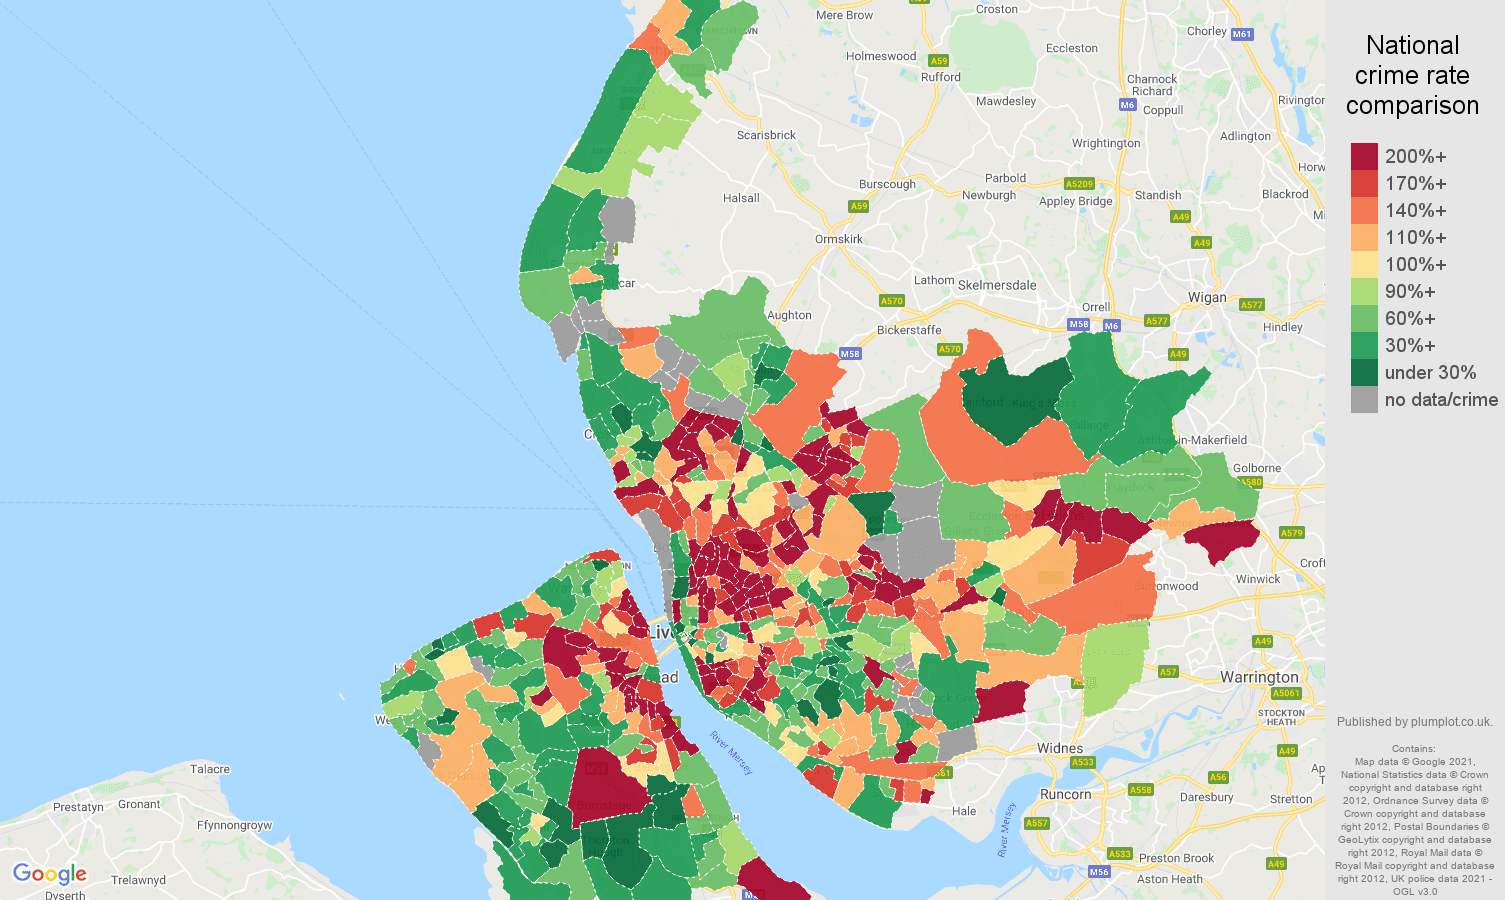 Merseyside criminal damage and arson crime rate comparison map